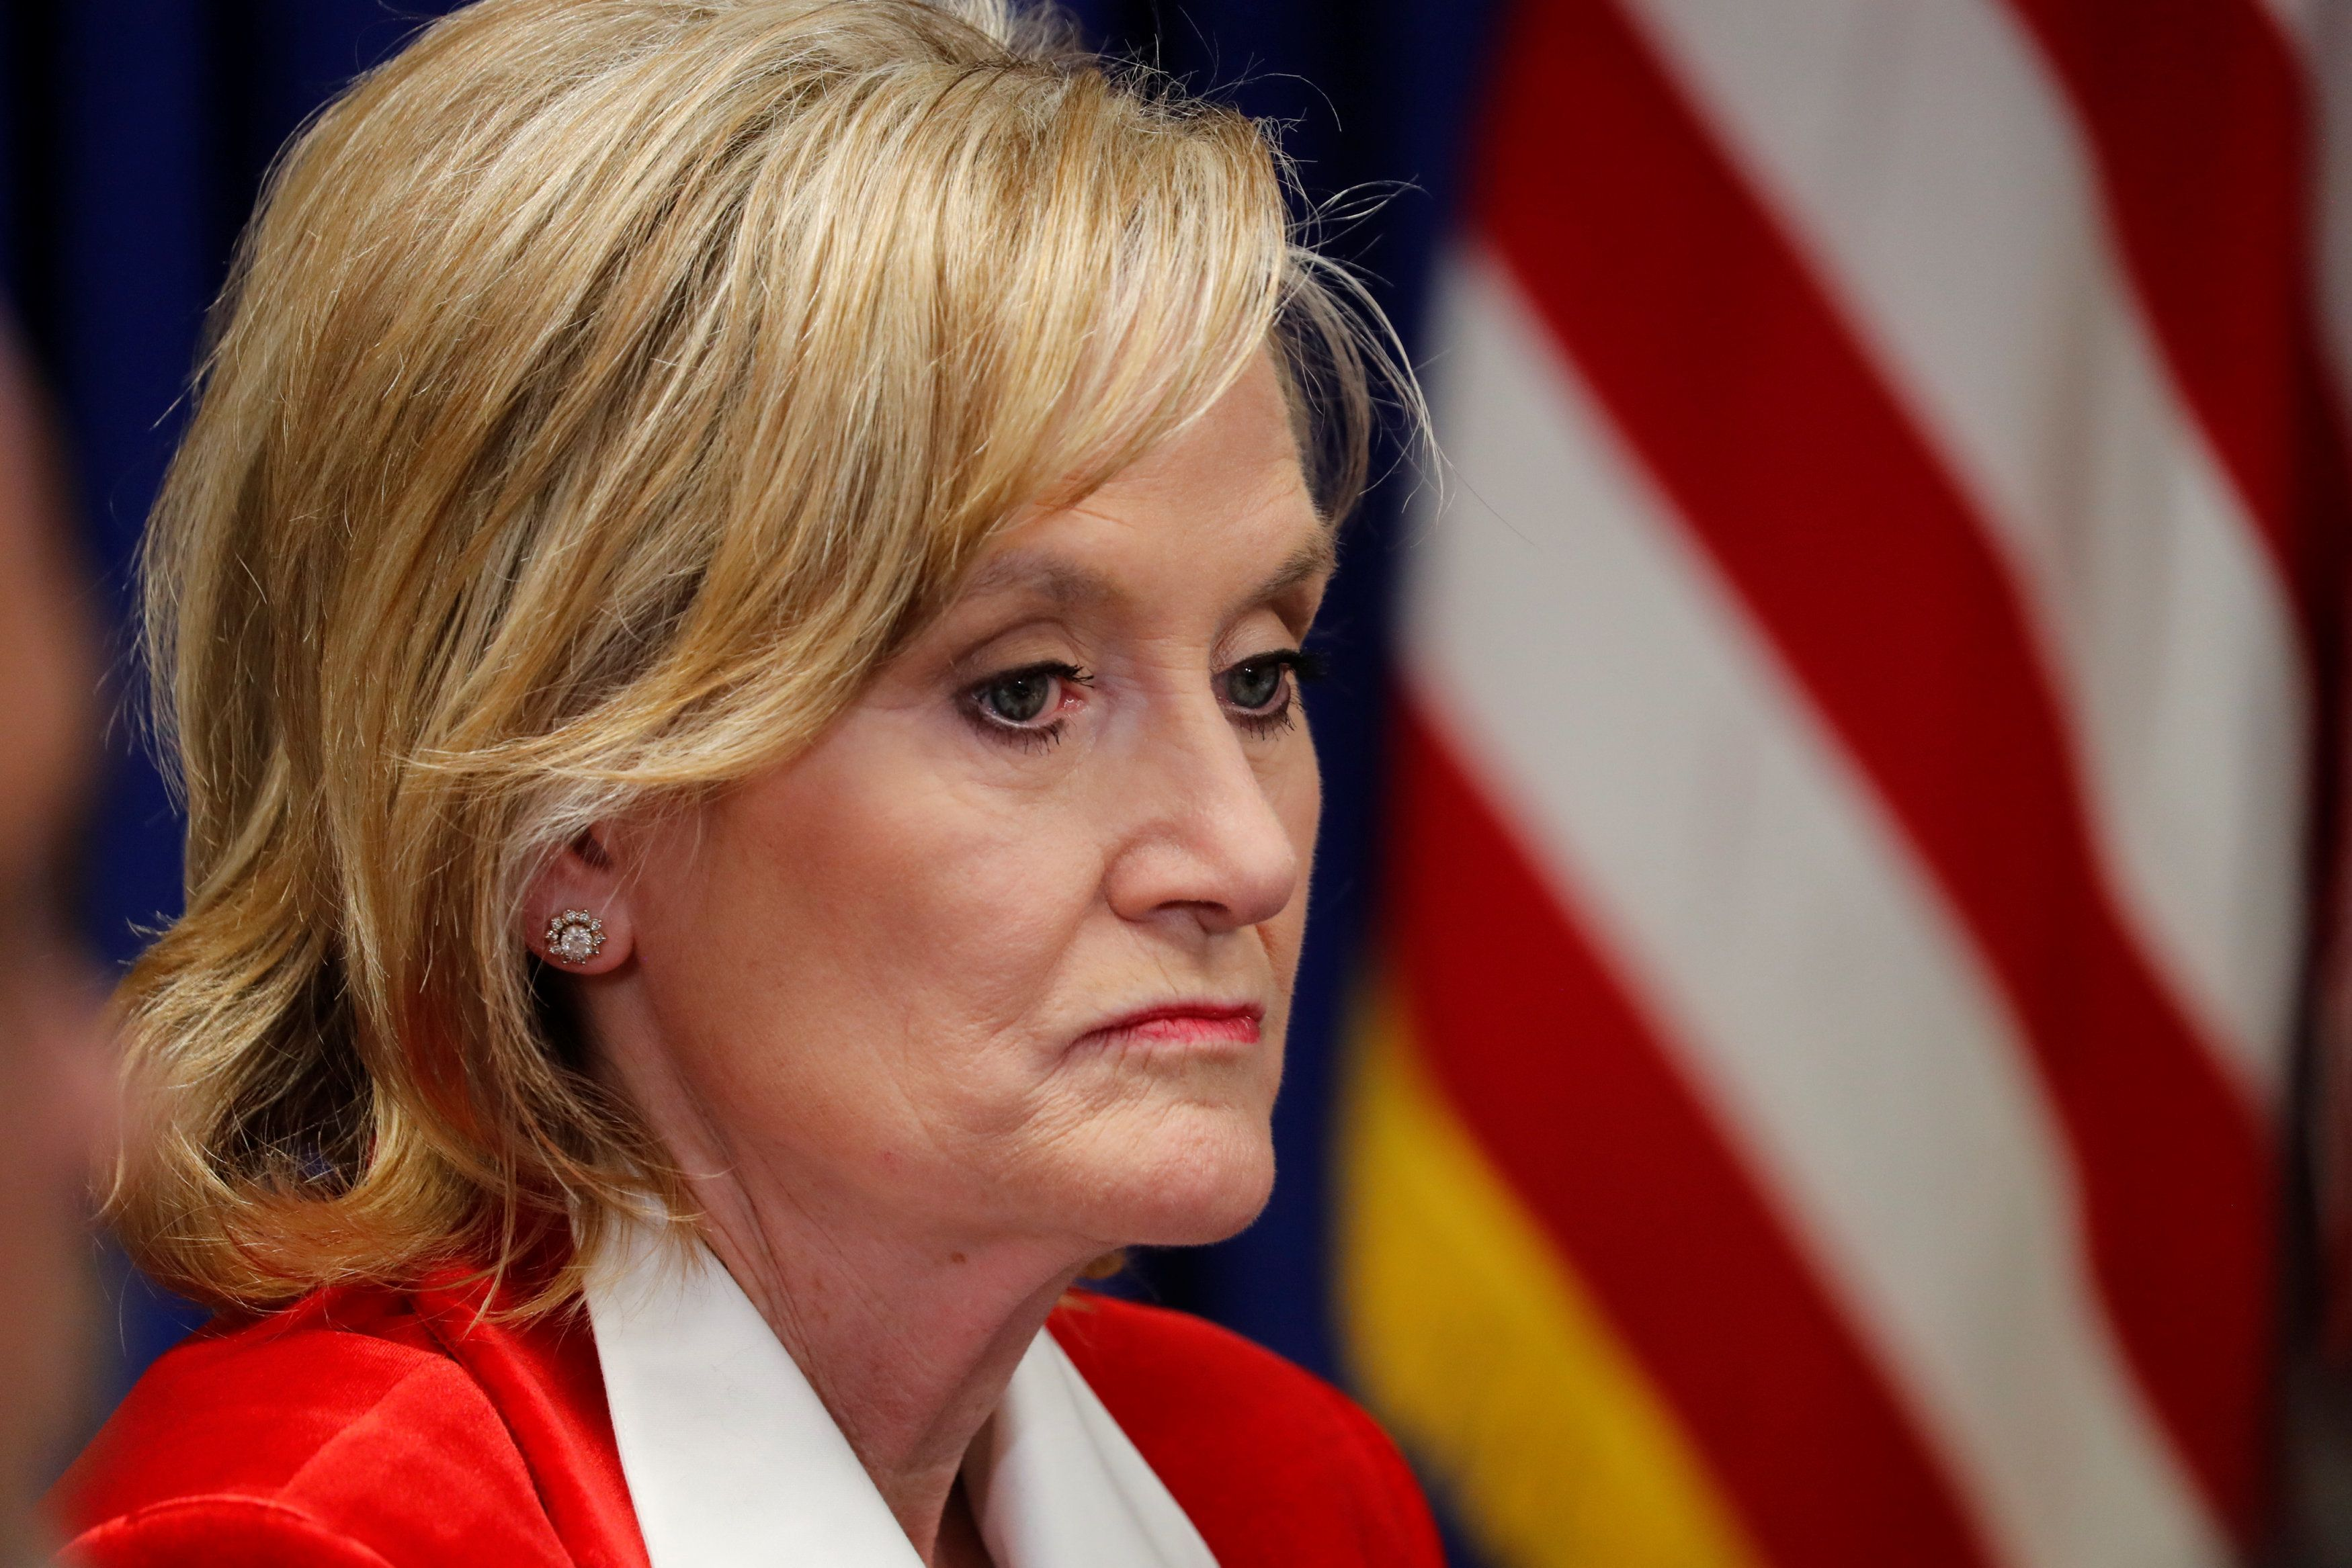 Republican U.S. Senator Cindy Hyde-Smith participate in a roundtable discussion on the FIRST STEP Act, in Gulfport, Mississippi, U.S., November 26, 2018.   REUTERS/Kevin Lamarque